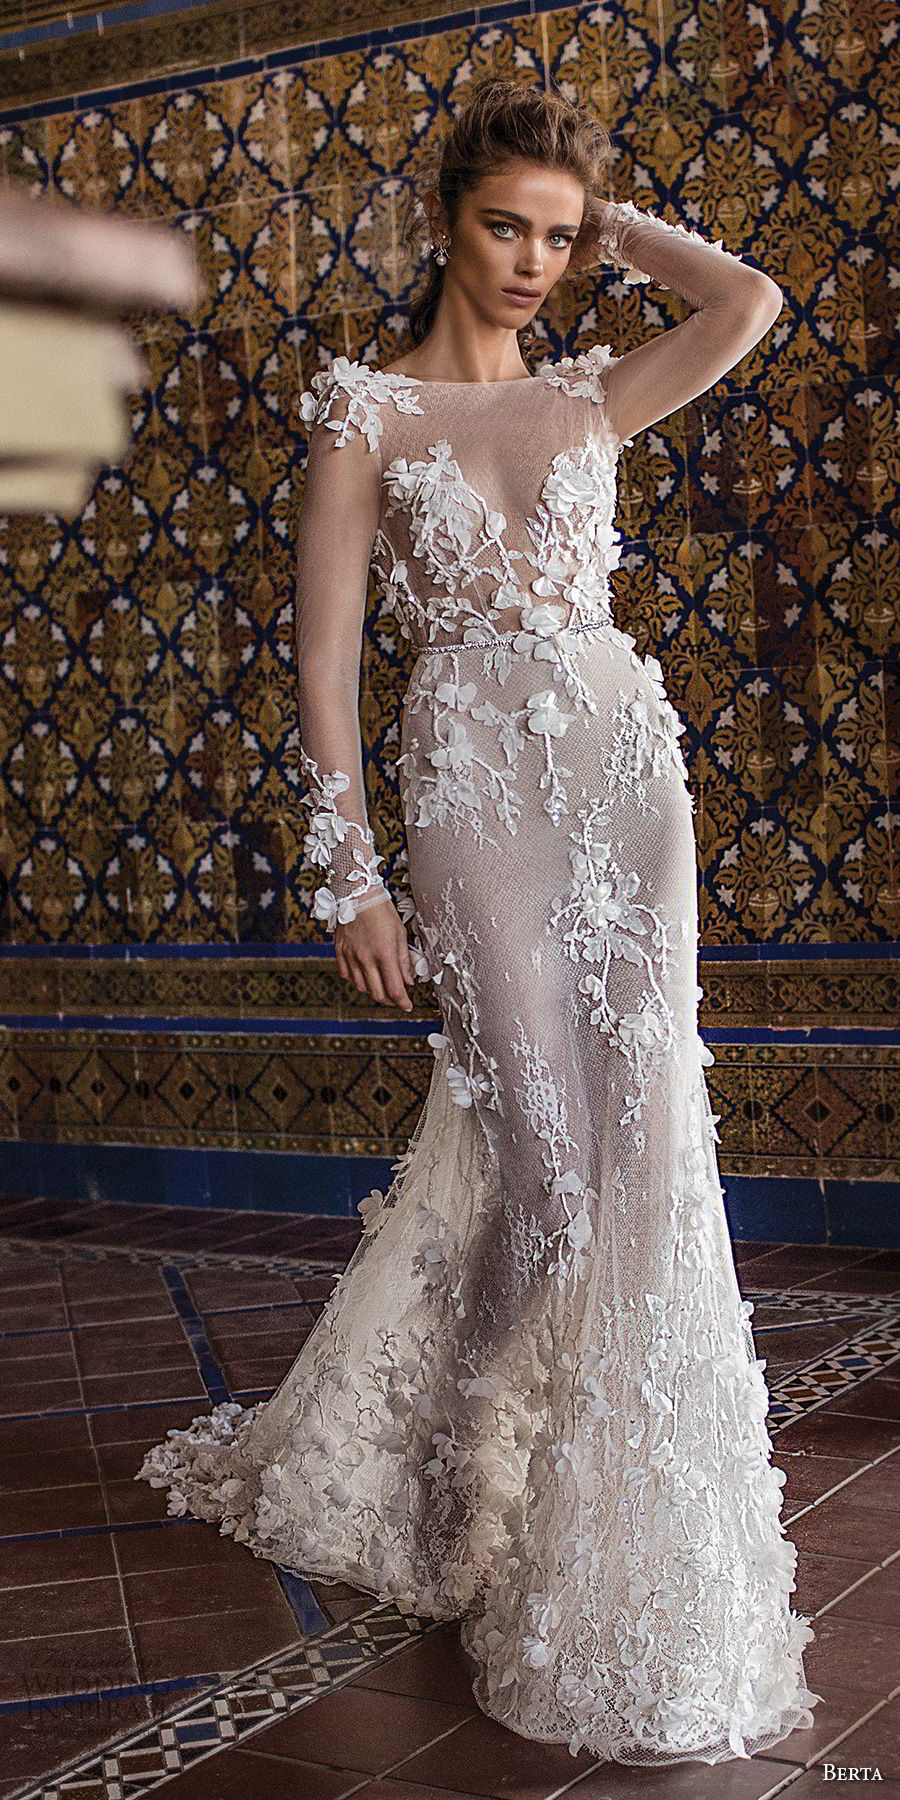 berta fall 2018 bridal long sleeves illusion bateau sweetheart neckline full embellishment elegant romantic fit and flare sheath wedding dress open scoop back chapel train (23) mv